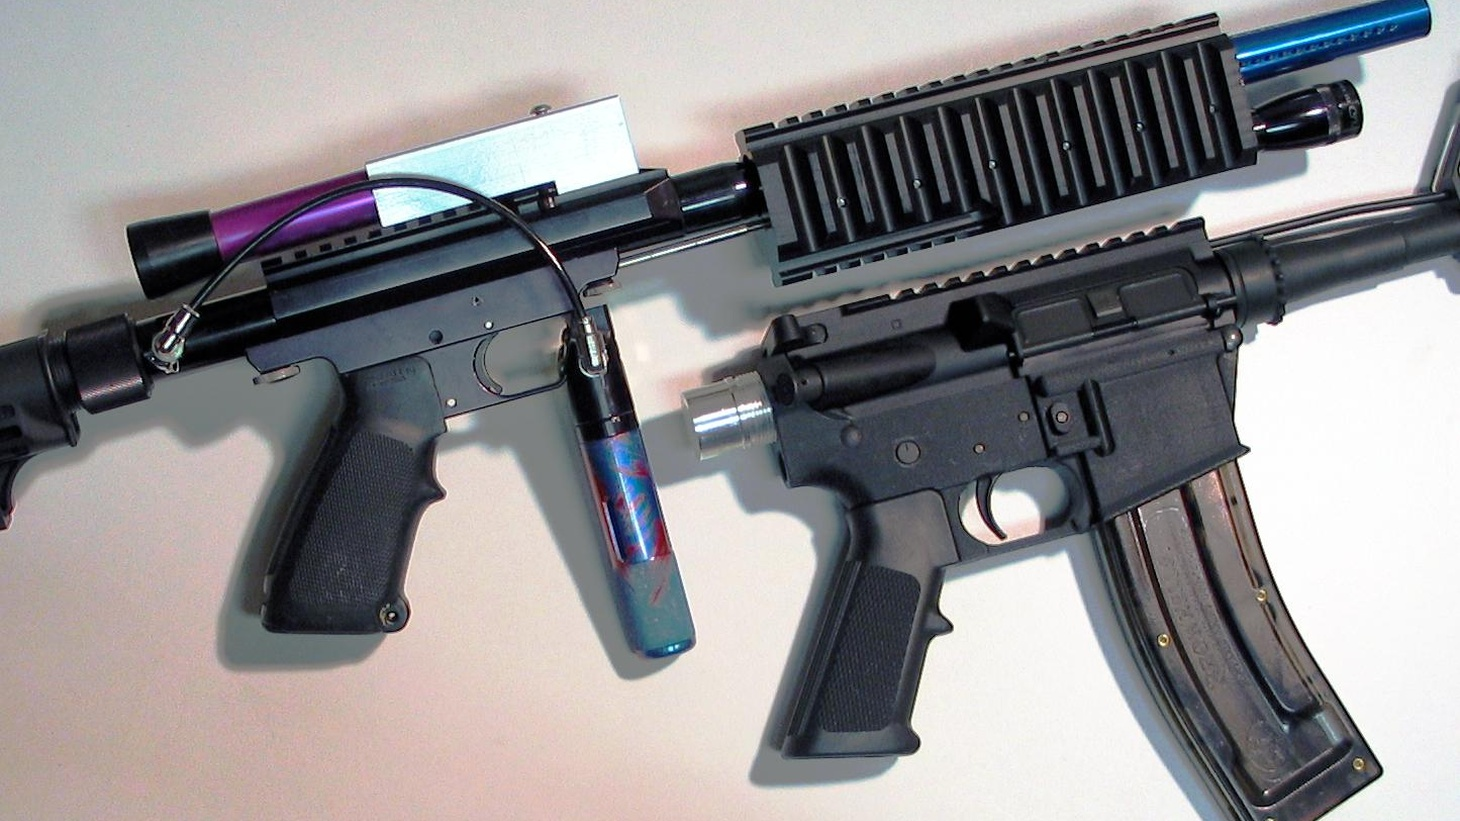 The nation is considering how to contain gun violence, while design and innovation produce ever more deadly weapons.